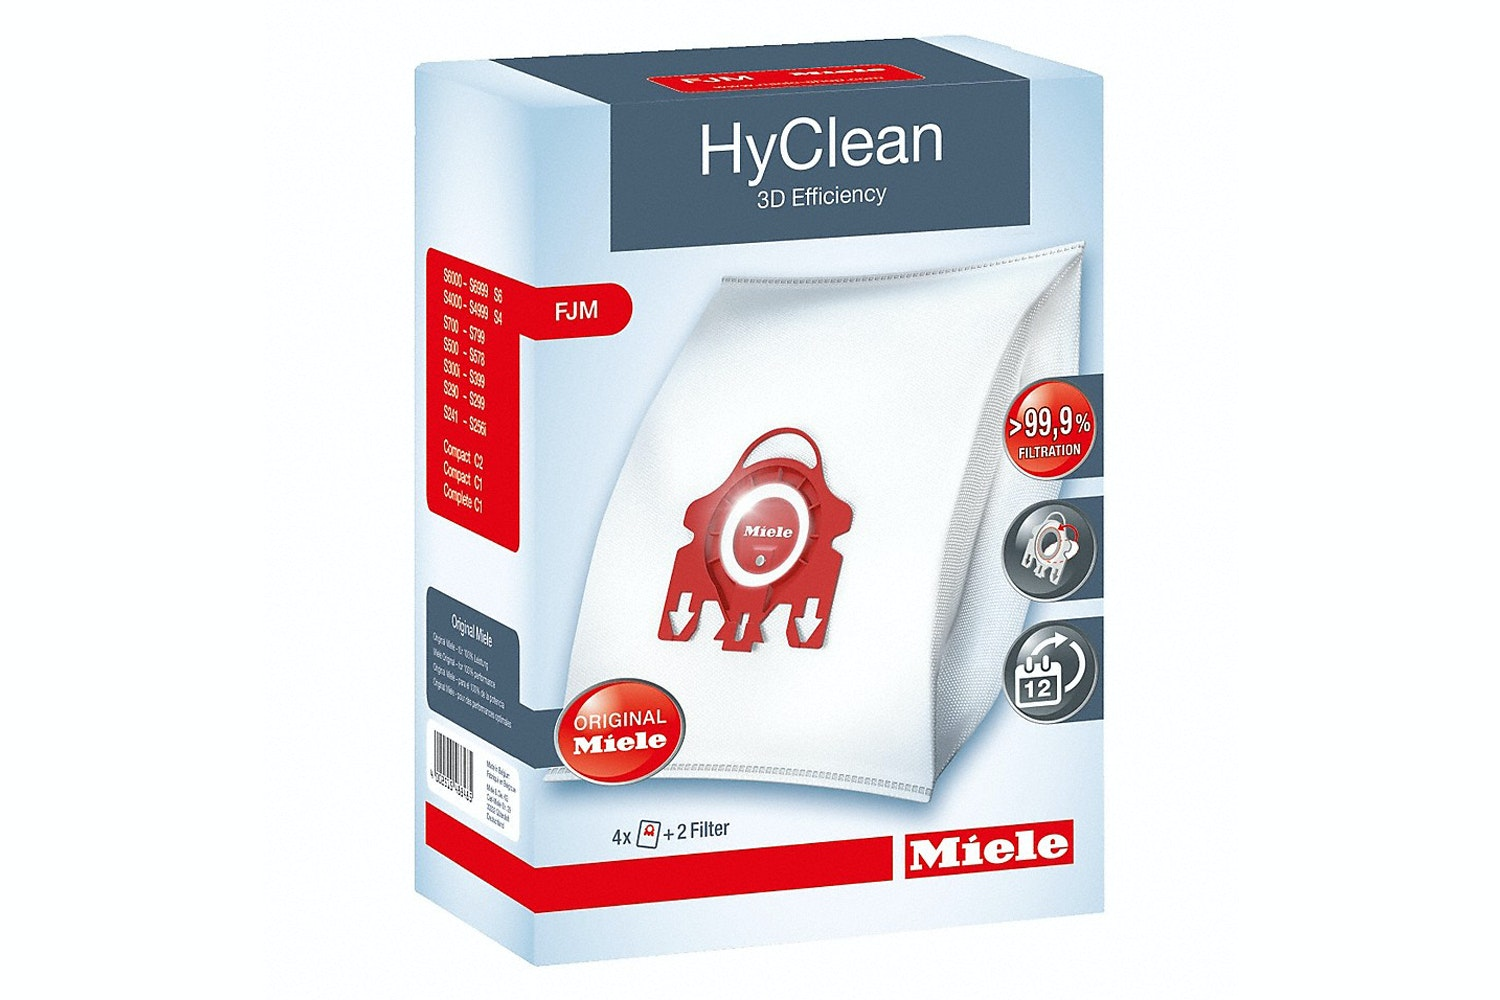 Miele FJM HyClean 3D  HyClean 3D Efficiency FJM dustbags   ensure that dust picked up stays inside the vacuum cleaner